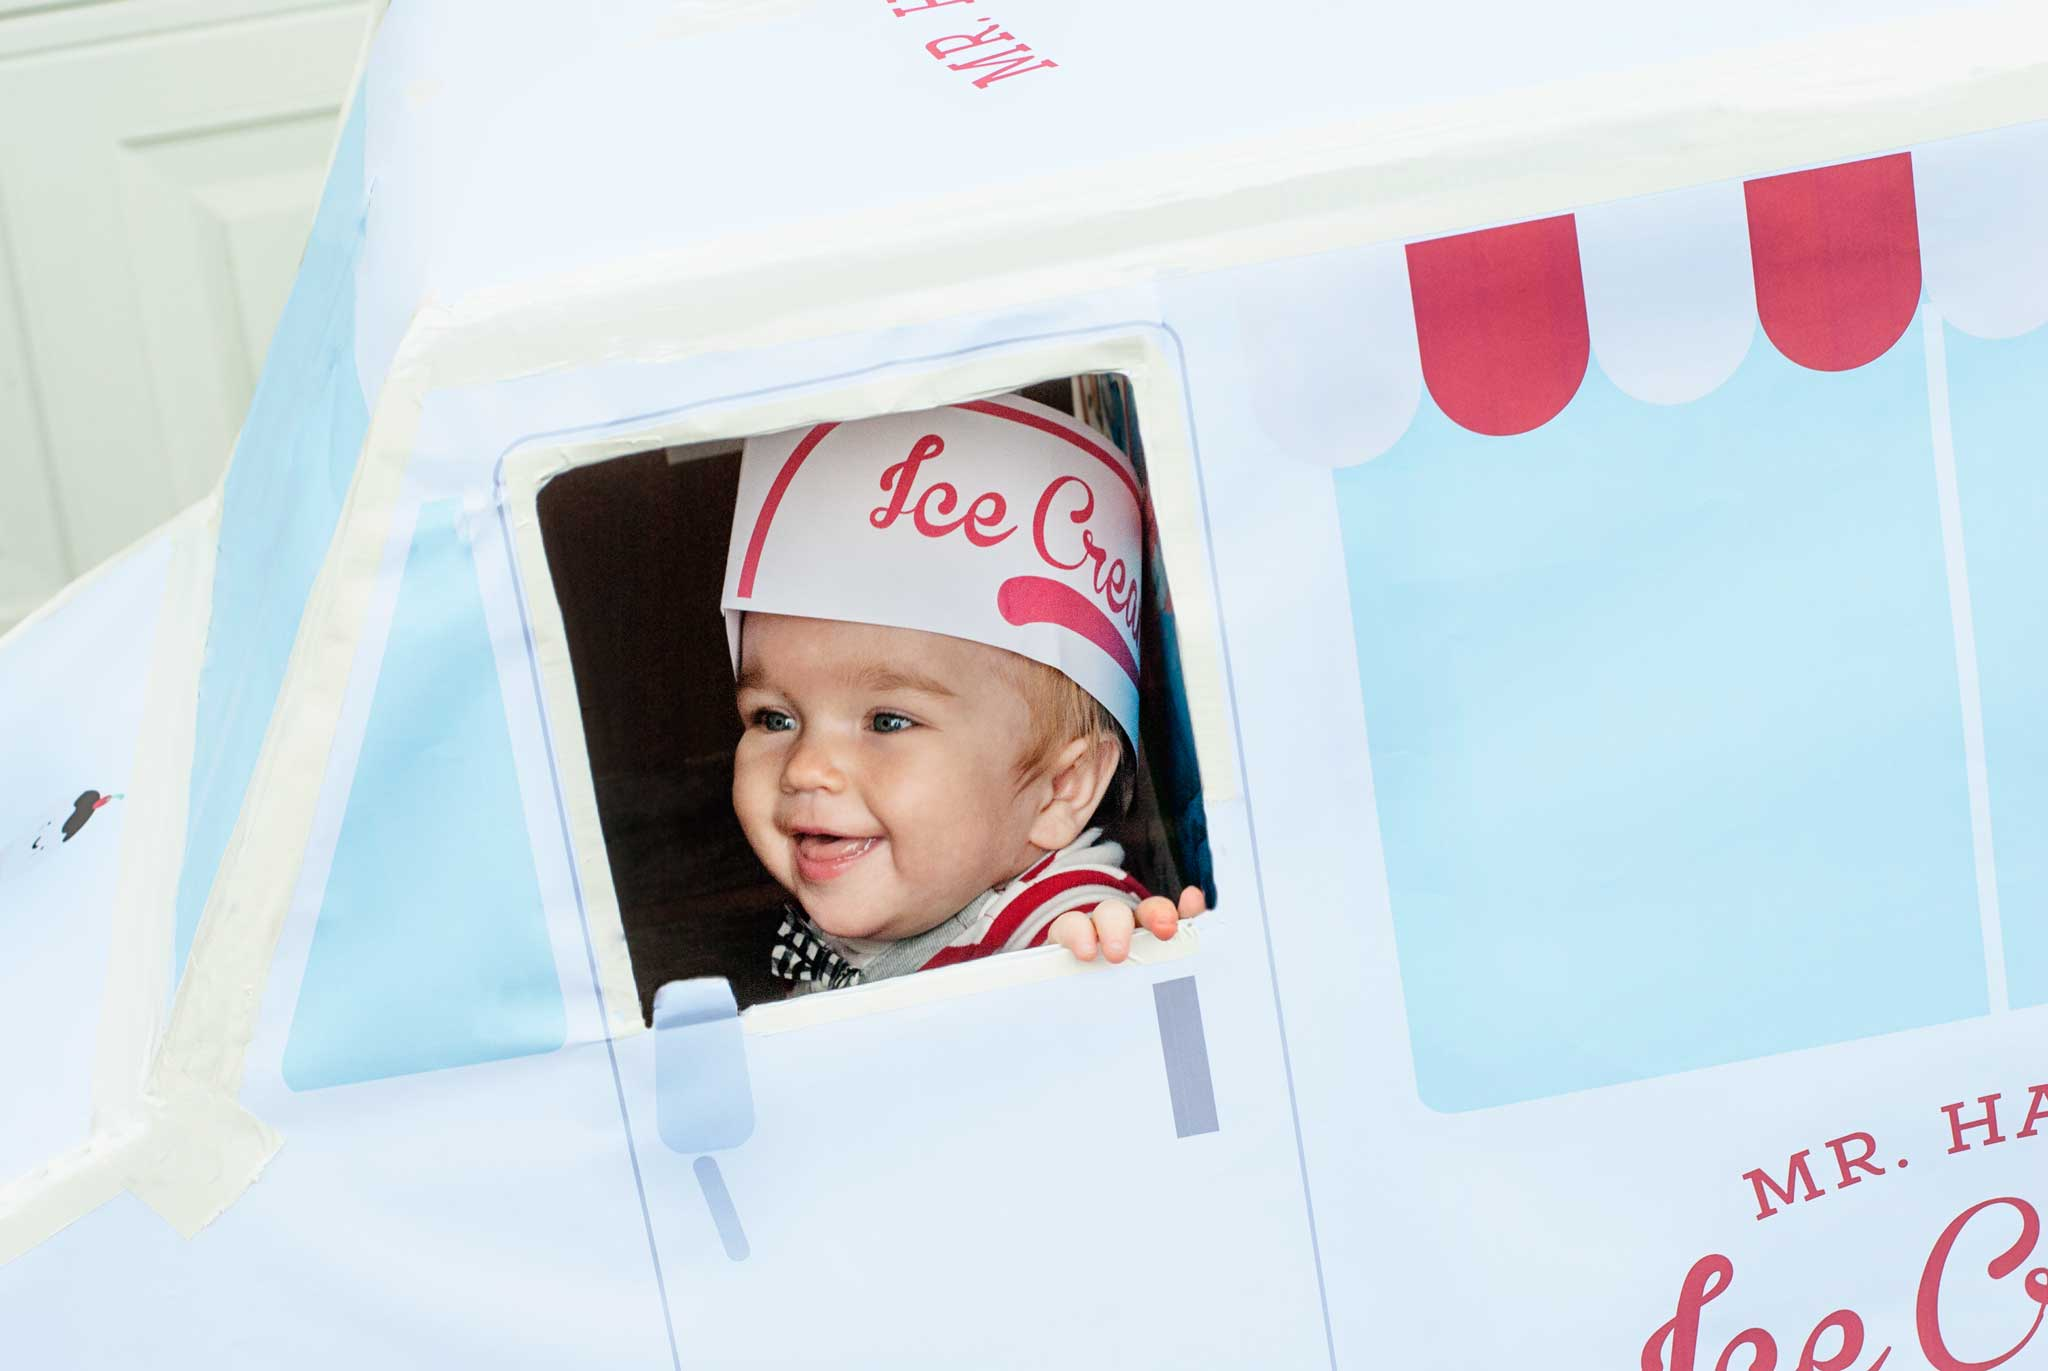 Toddler Ice Cream Man Costume